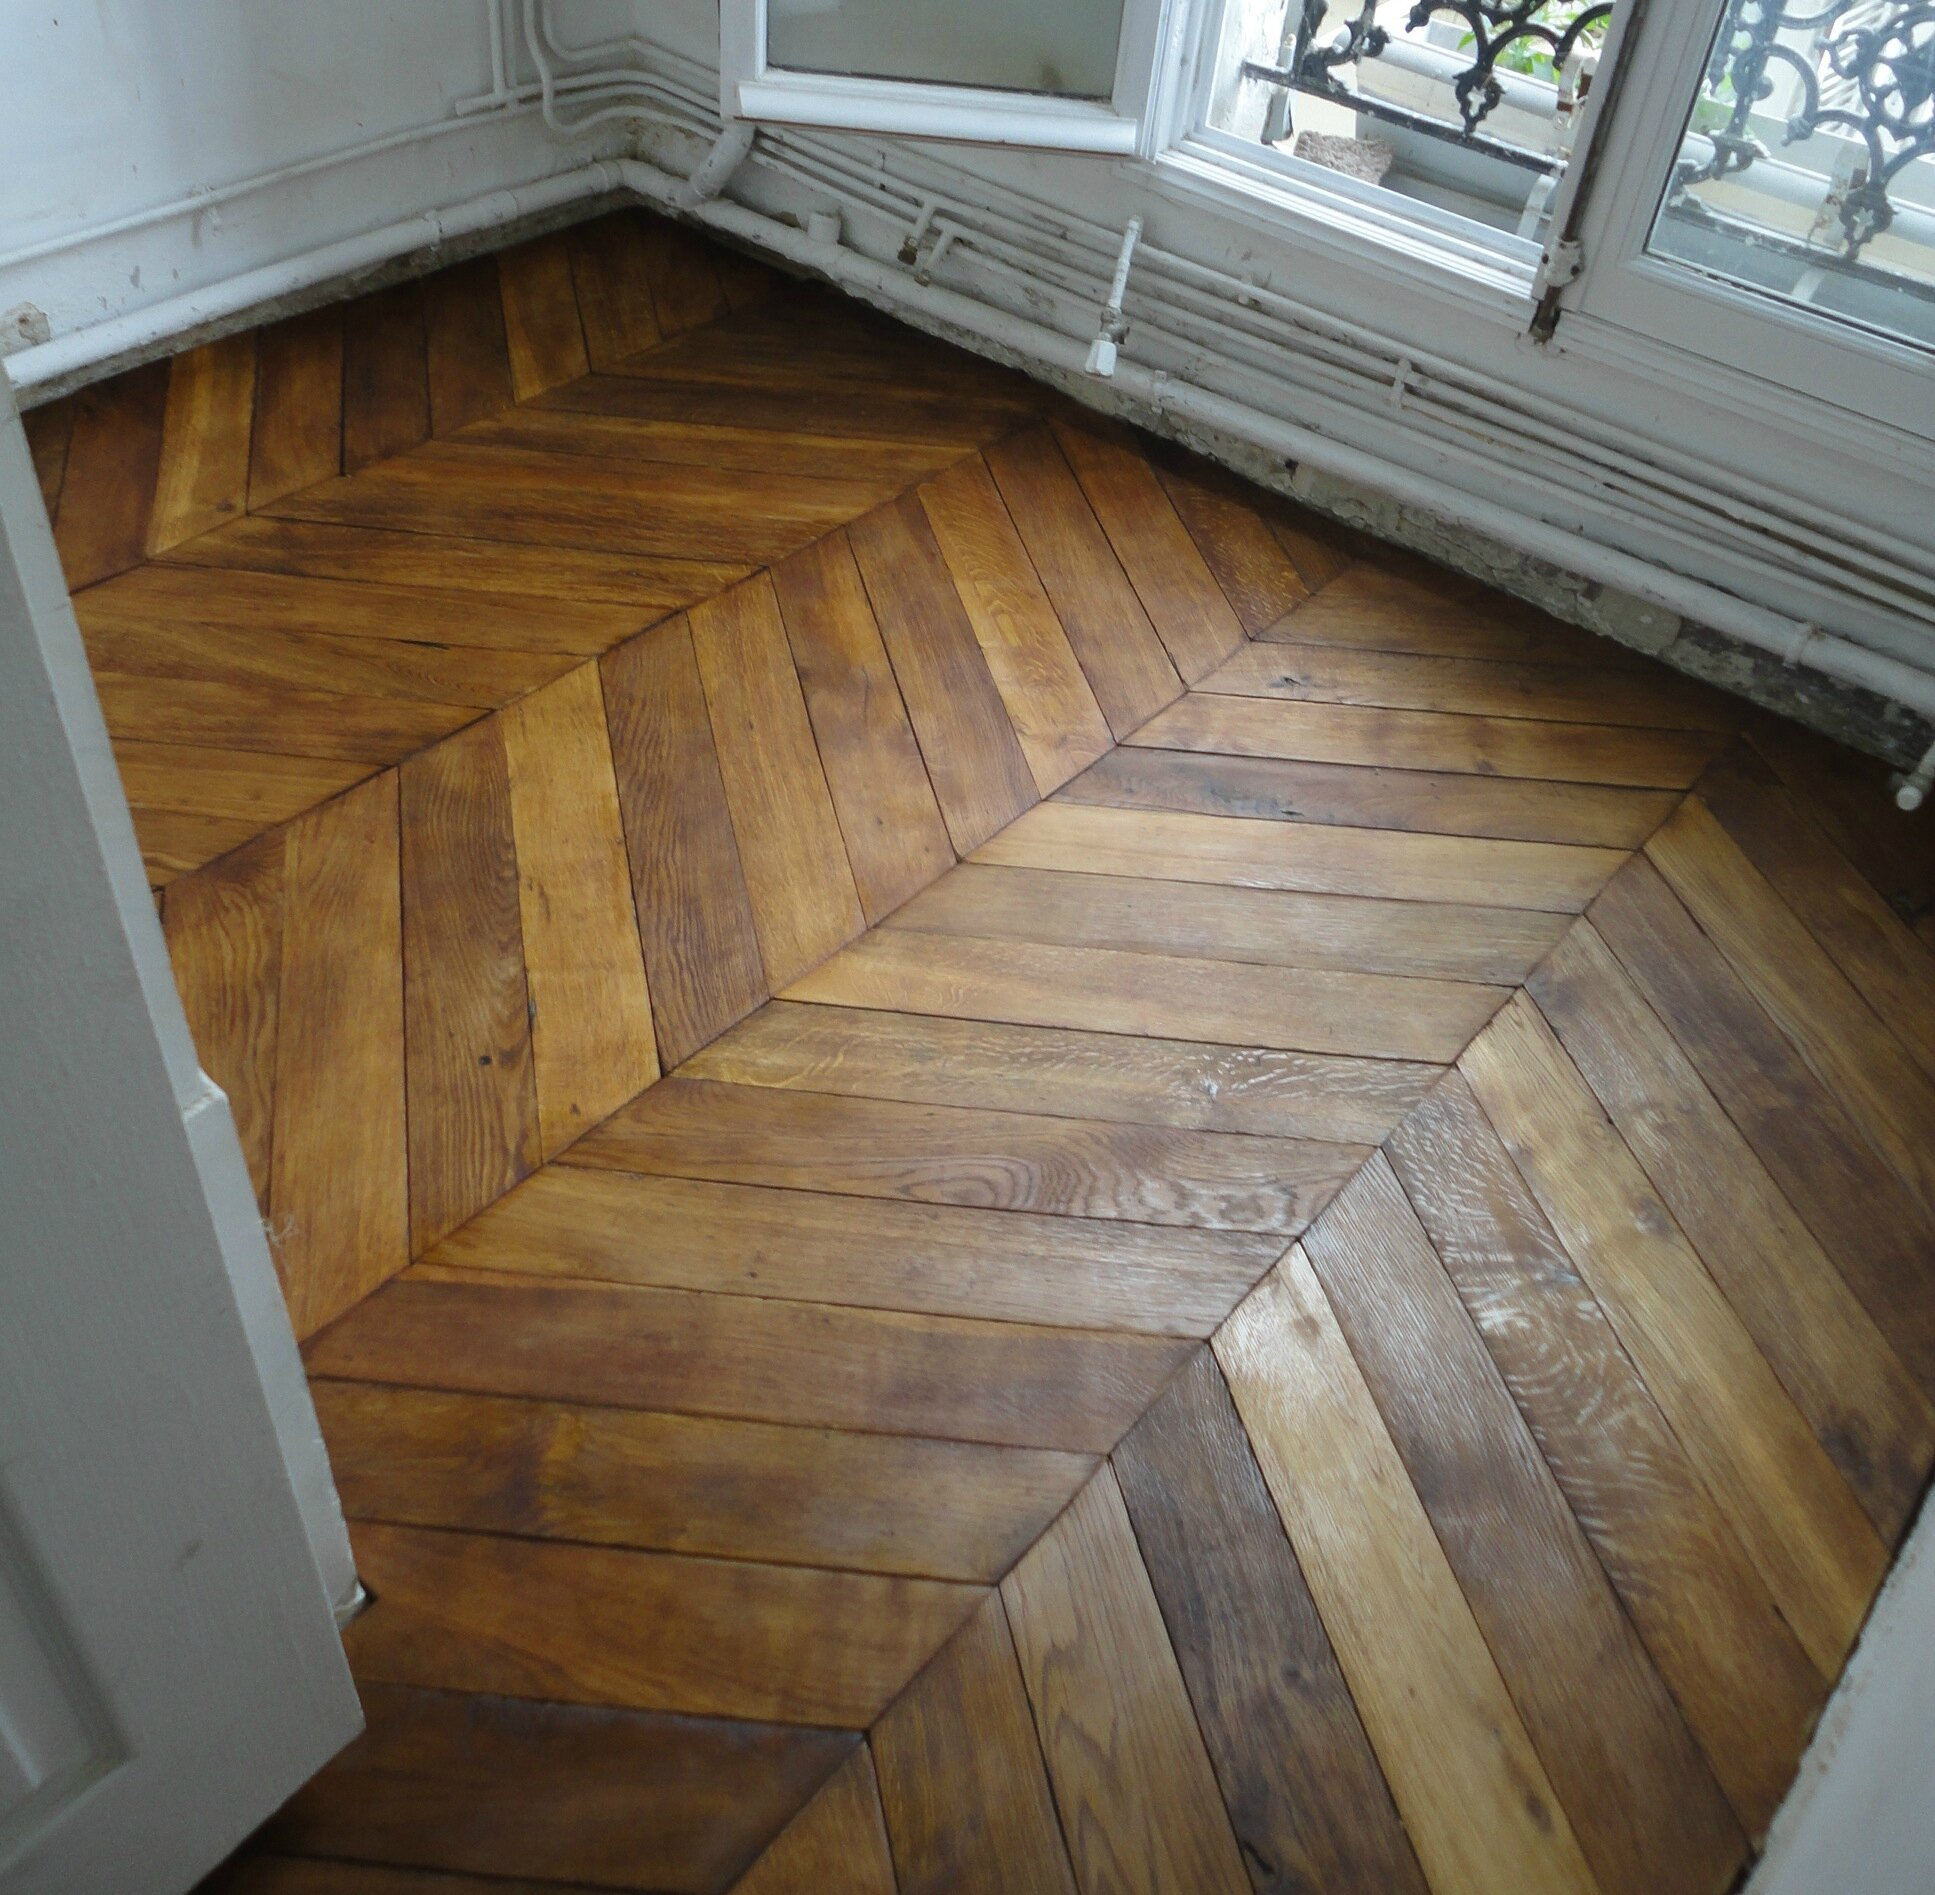 Les al as du parquet ancien pisode 1 grenouille citadine - Renovation parquet ancien ...